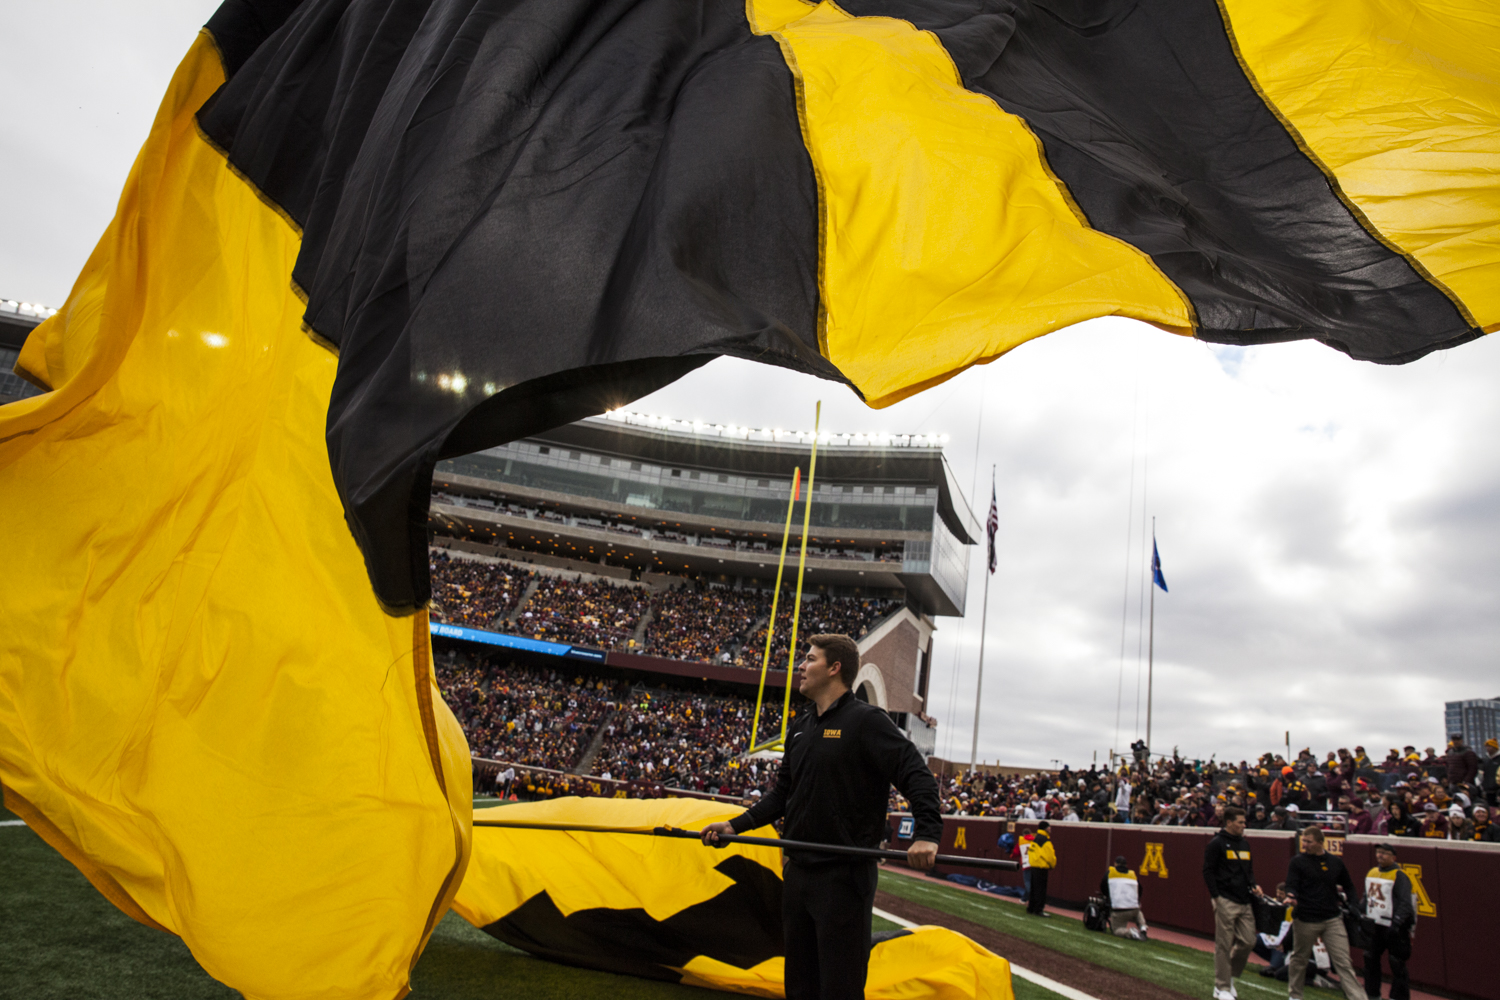 A+member+of+the+Iowa+spirit+squad+waves+a+flag+during+Iowa%27s+game+against+Minnesota+at+TCF+Bank+Stadium+on+Saturday%2C+October+6%2C+2018.+The+Hawkeyes+defeated+the+Golden+Gophers+48-31.